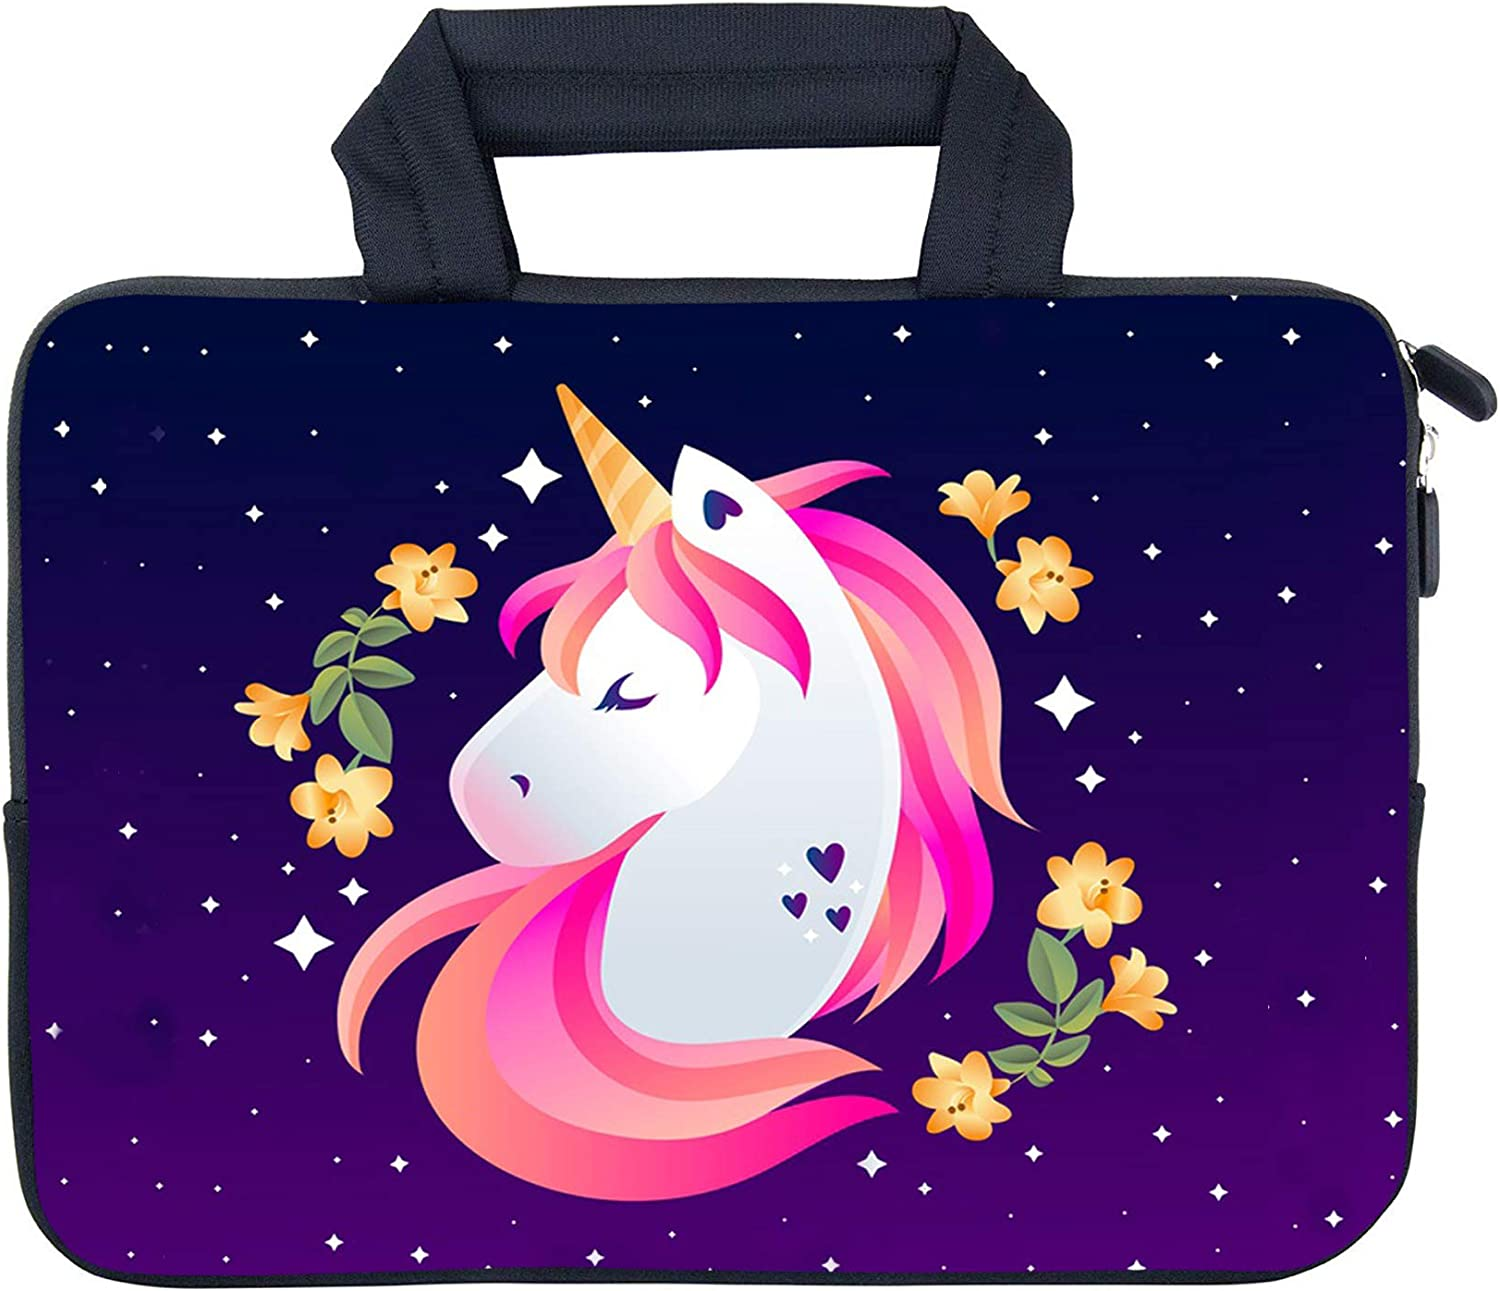 "AMARY 11.6"" 12"" 12.1"" 12.5 inch Laptop Handle Bag Neoprene Notebook Carrying Pouch Chromebook Sleeve Ultrabook Case Tablet Cover Fit Apple MacBook Air HP DELL Lenovo Asus Samsung (Unicorn)"